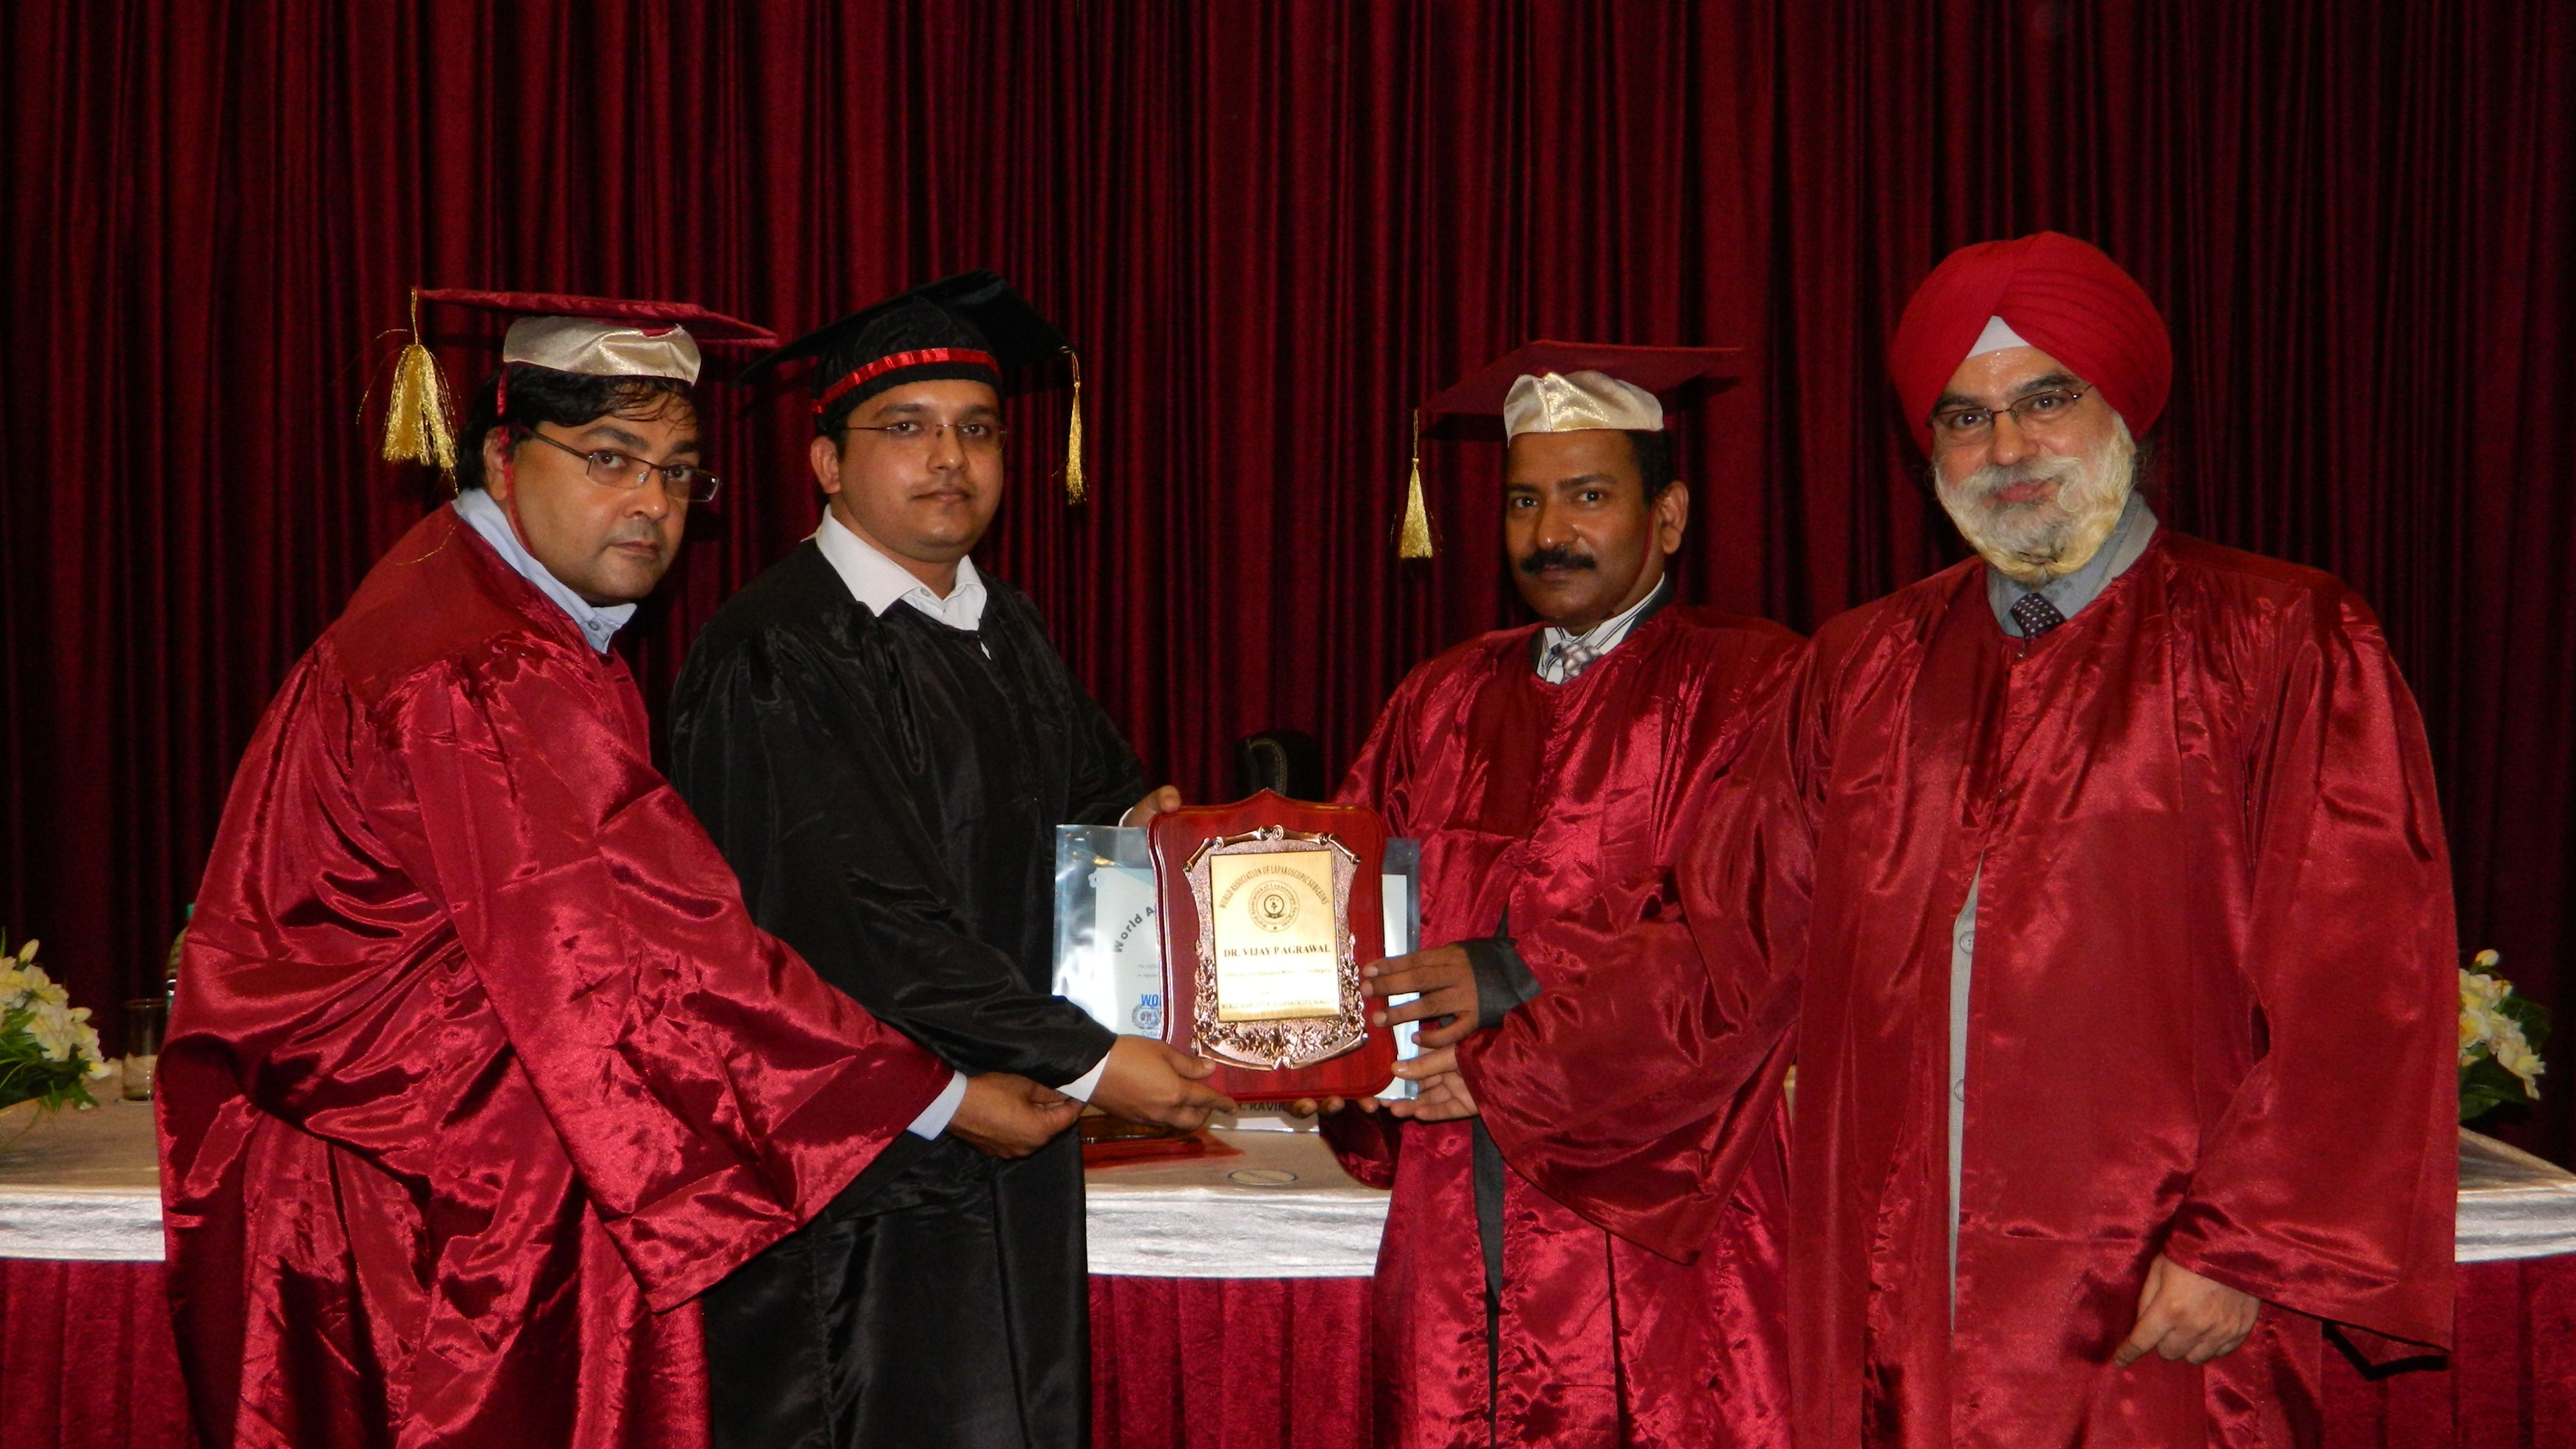 Dr. Vijay P Agrawal receiving certificate of Fellowship in minimal access Surgery at World Laparoscopy Hospital. For more detail please log on to www.laparoscopyhospital.com